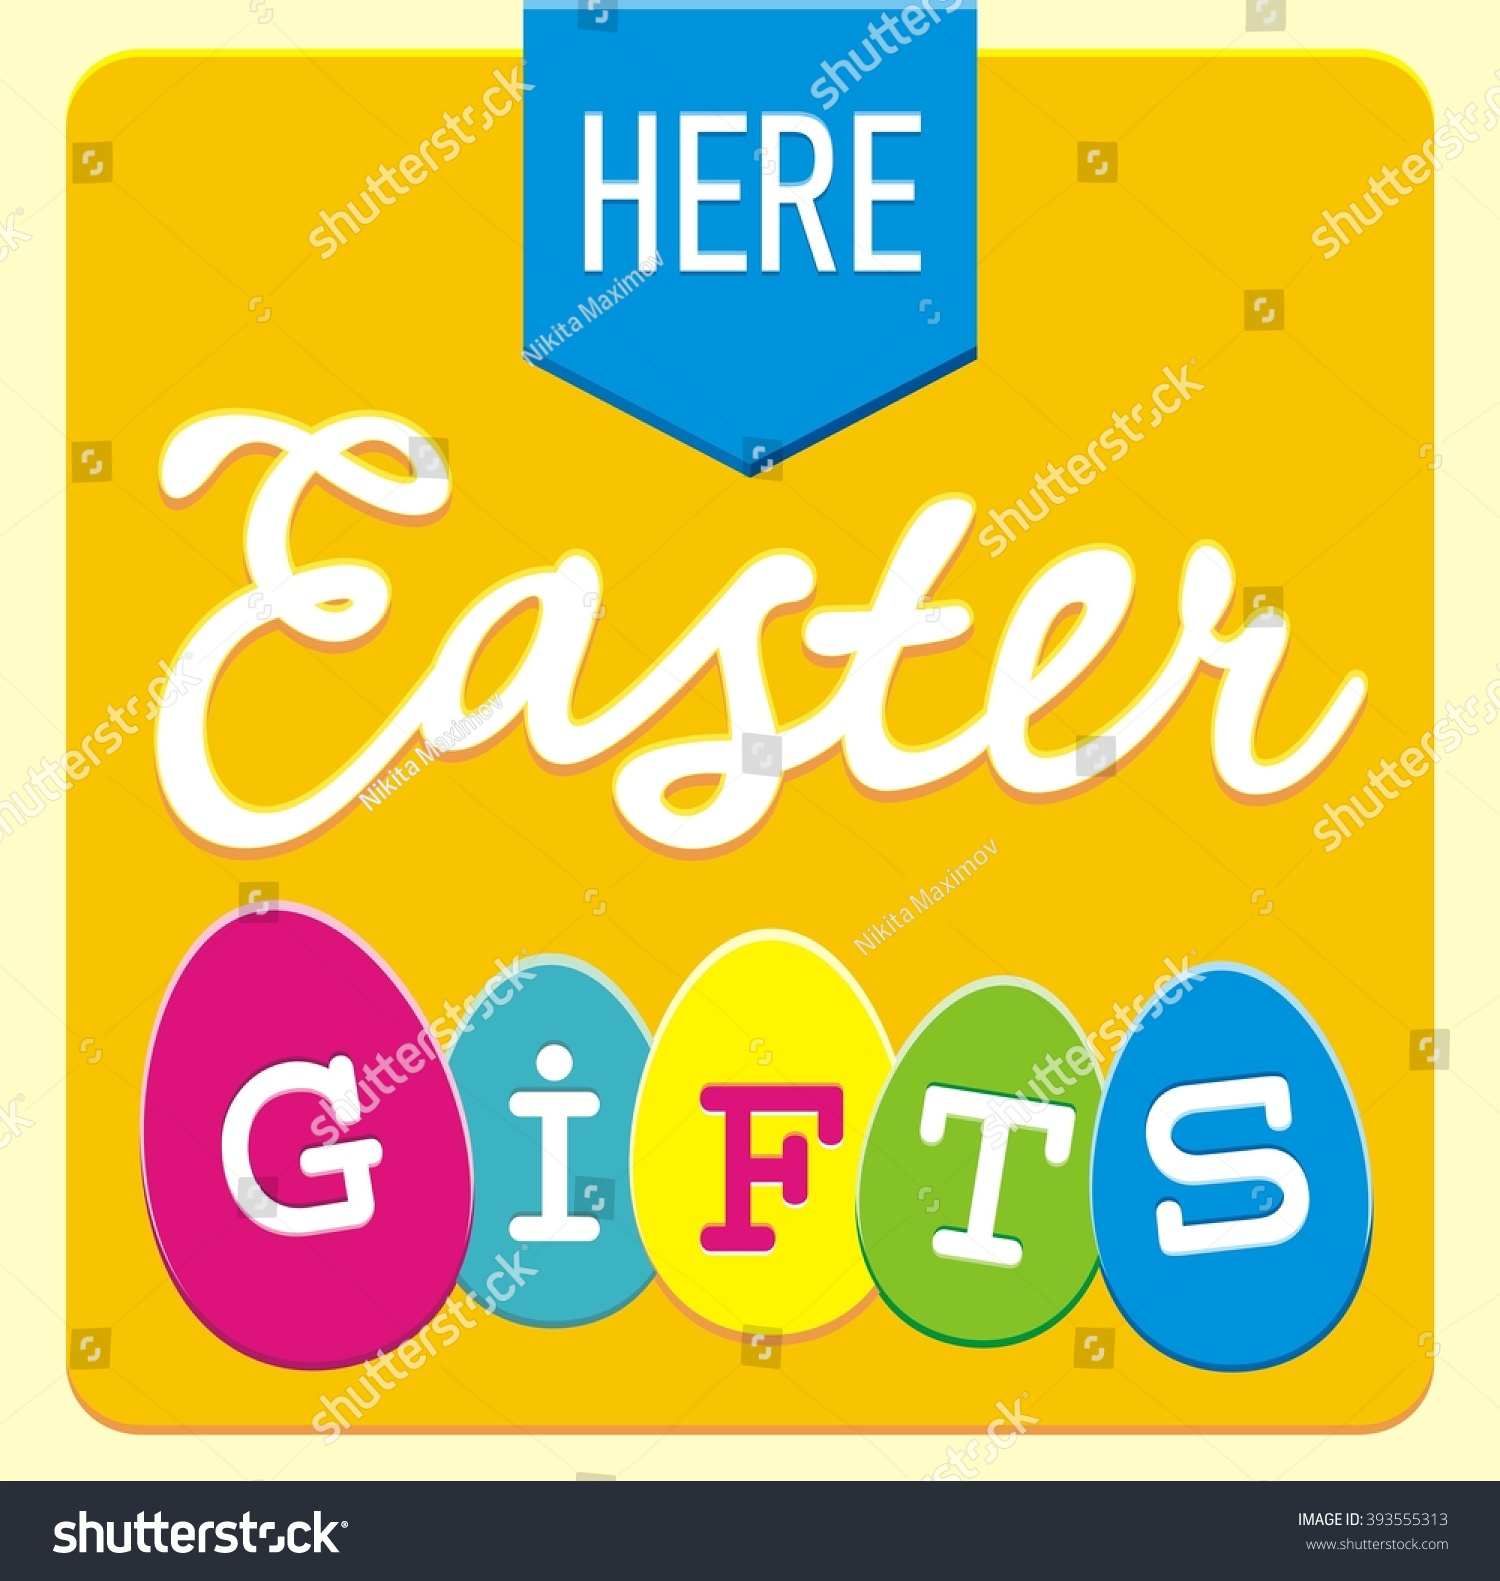 Here easter gifts sign illustration ribbon stock illustration here easter gifts sign illustration with ribbon arrow calligraphy font and different form colorful negle Gallery